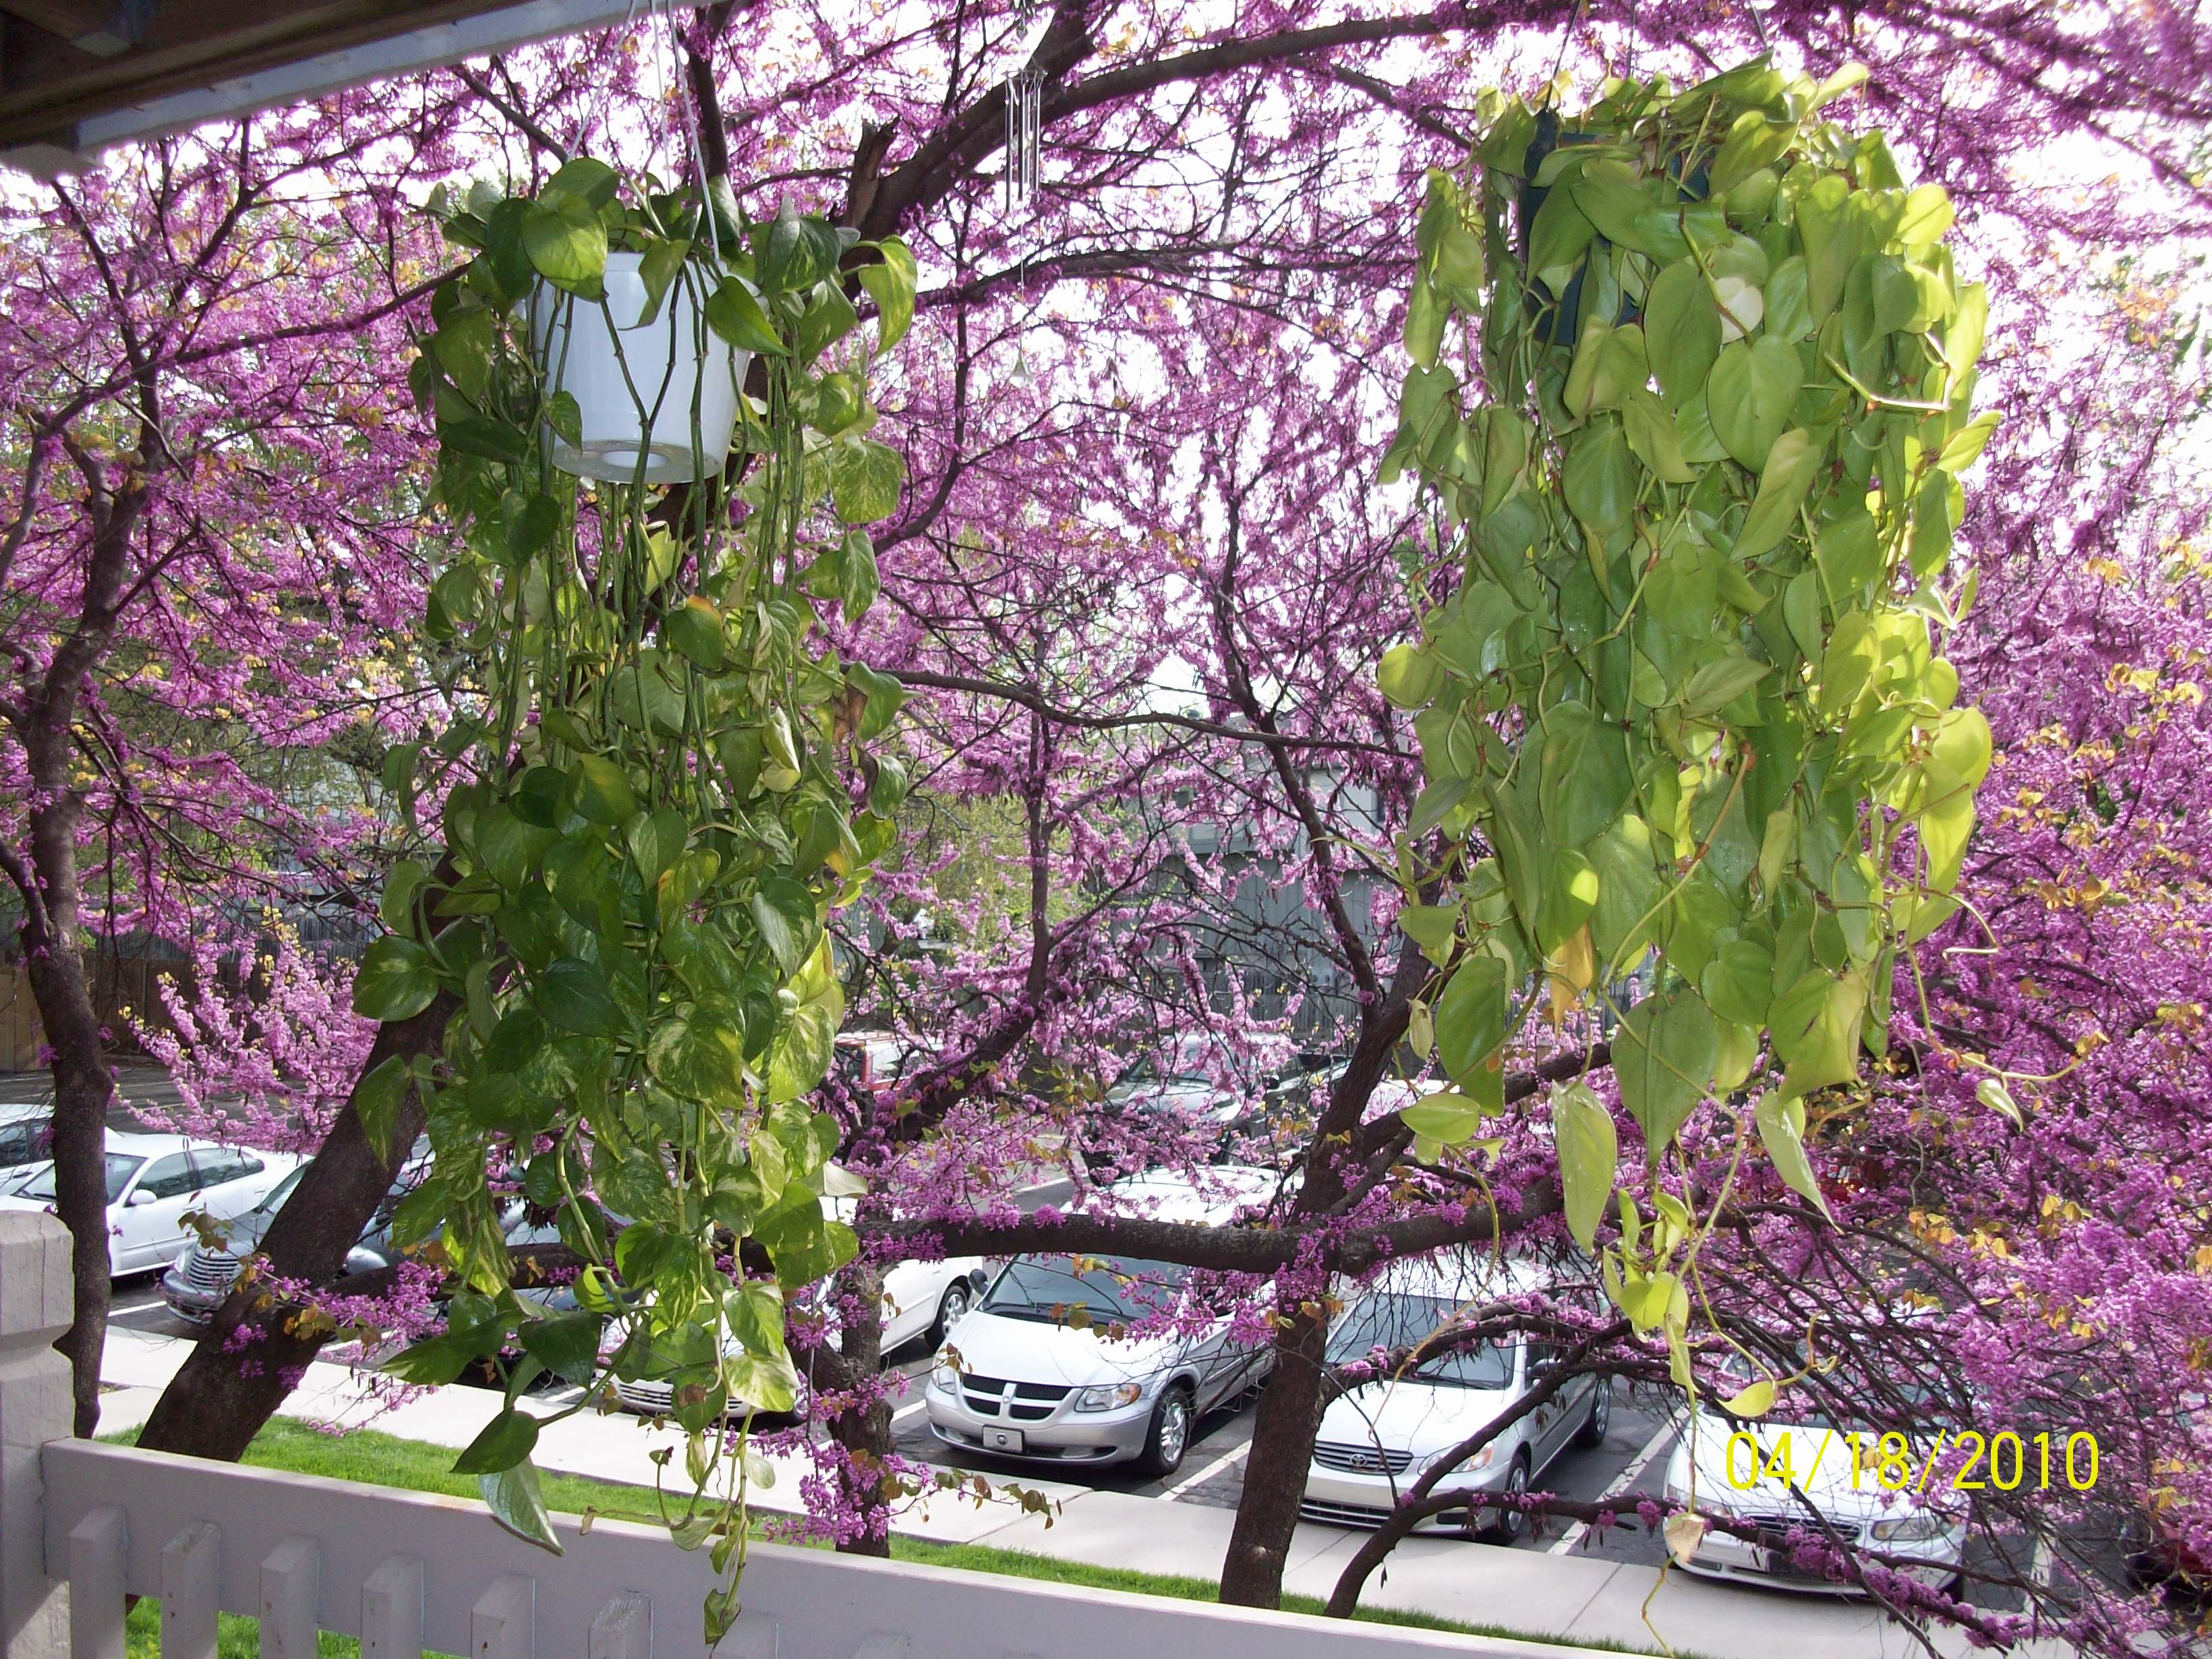 Herman and Stella, in all their glorious splendor, hanging from my old balcony in Beautiful Lenexa.